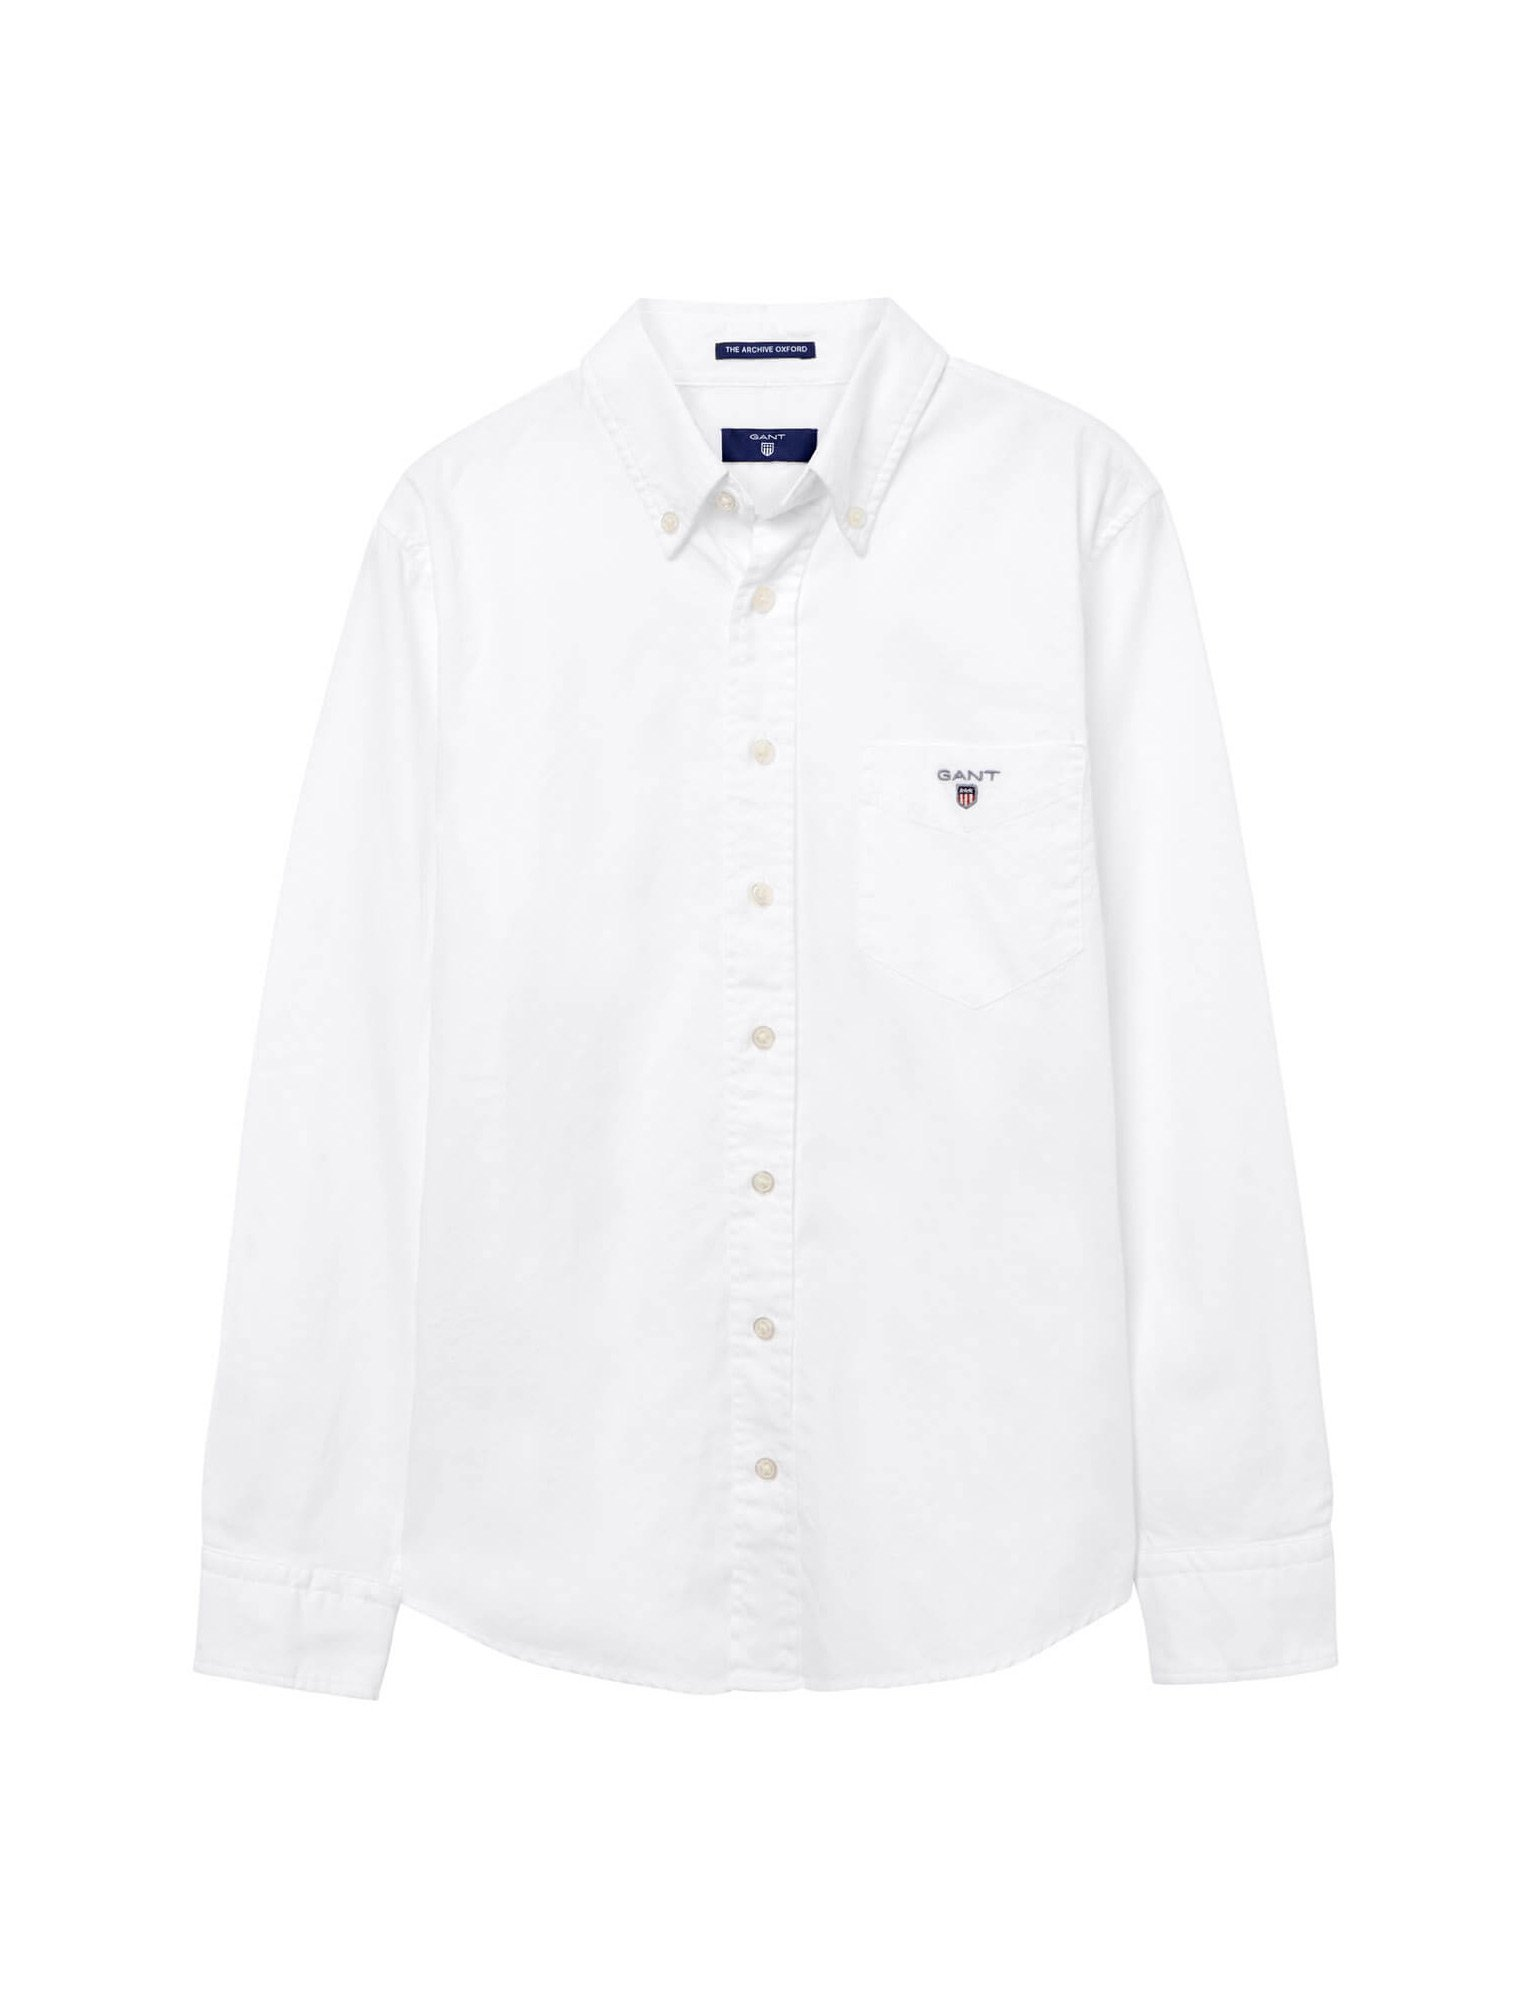 Gant Boy's White Long Sleeve Cotton Shirt in Size 3 Years (98 cm) White